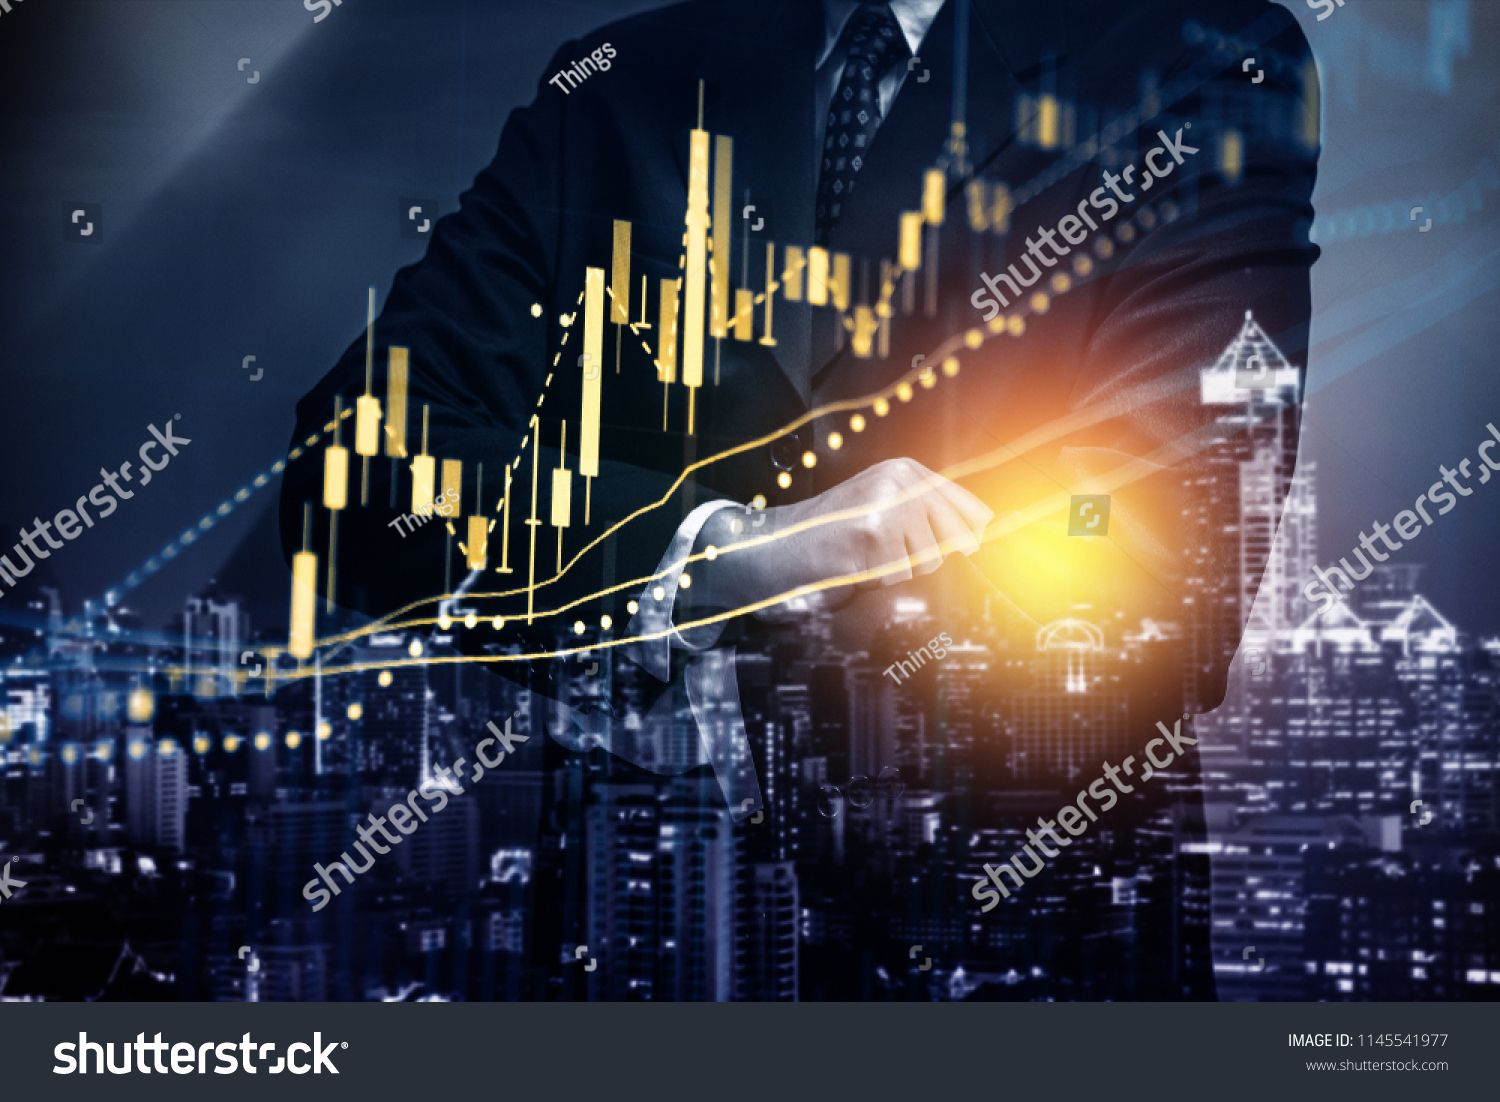 Stock Market Data On Digital Led Display A Daily Market Price And Quotation Of Prices Chart And Candle Stick Tracki Stock Market Data Price Chart Stock Market